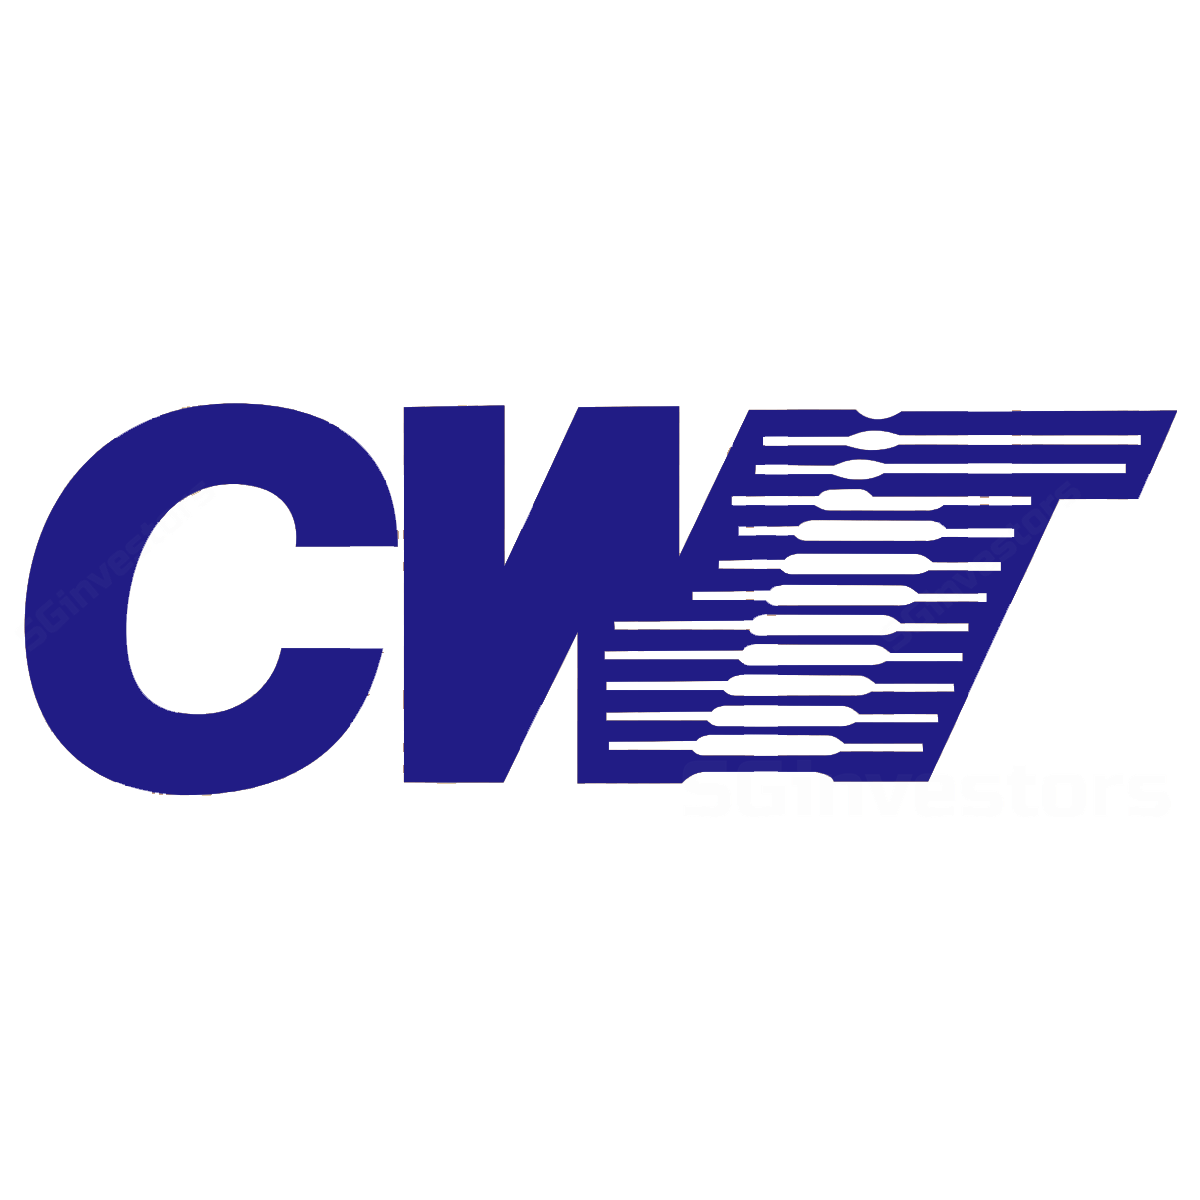 CWT Ltd - OCBC Investment 2017-02-27: Core FY16 missed our expectations